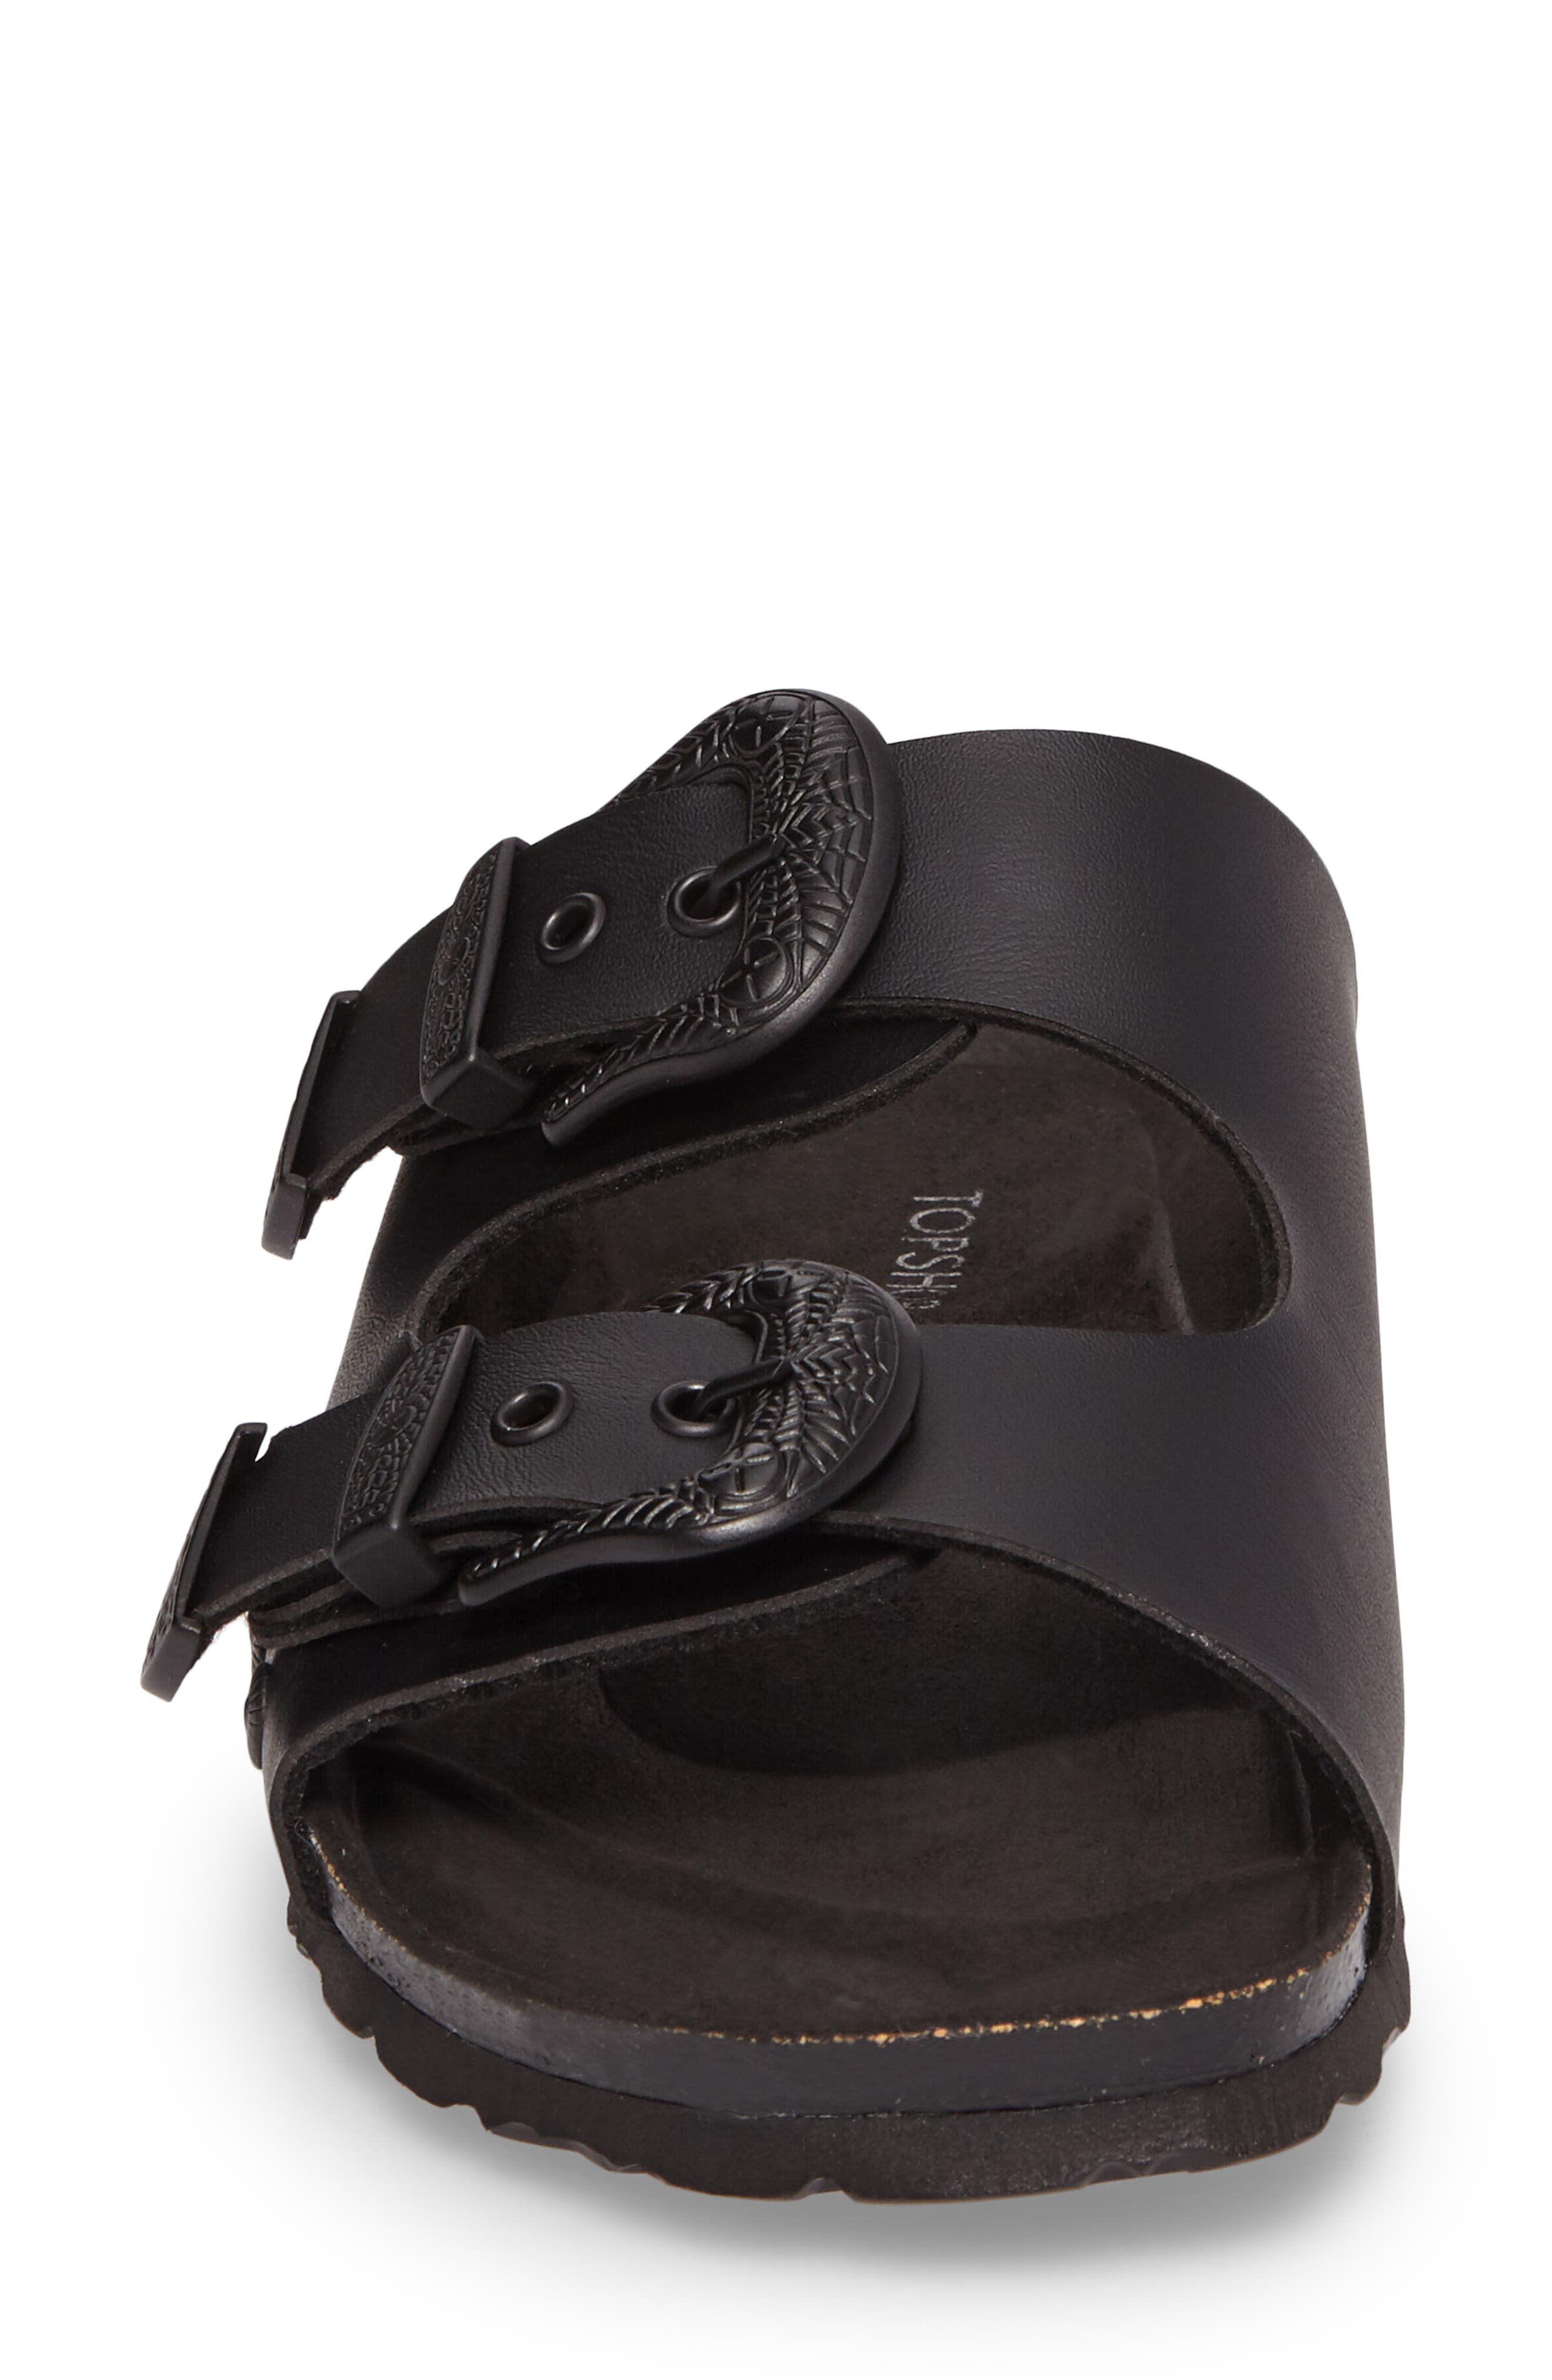 Studded Slide Sandal,                             Alternate thumbnail 19, color,